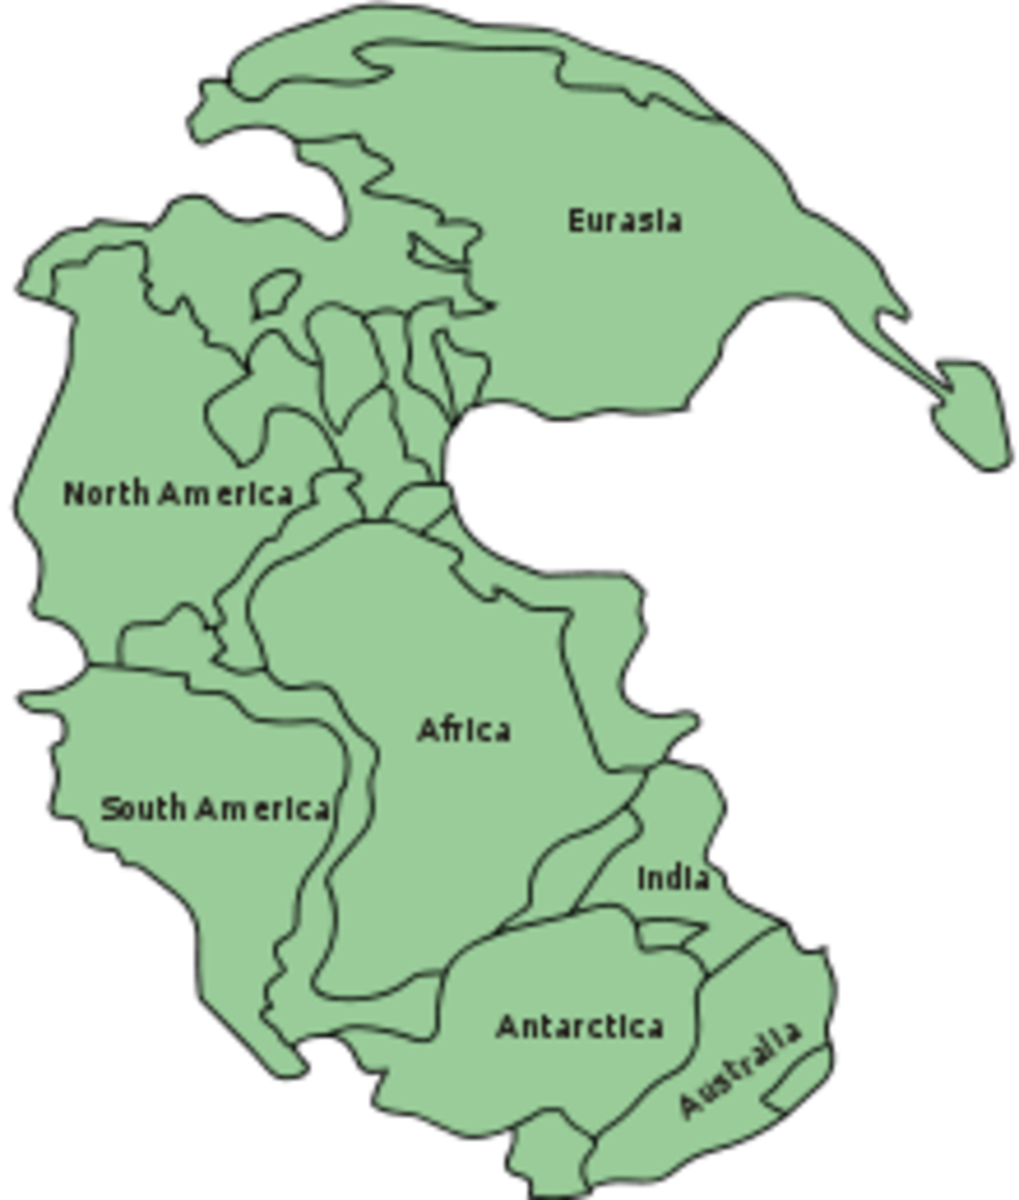 The supercontinent known as Pangea